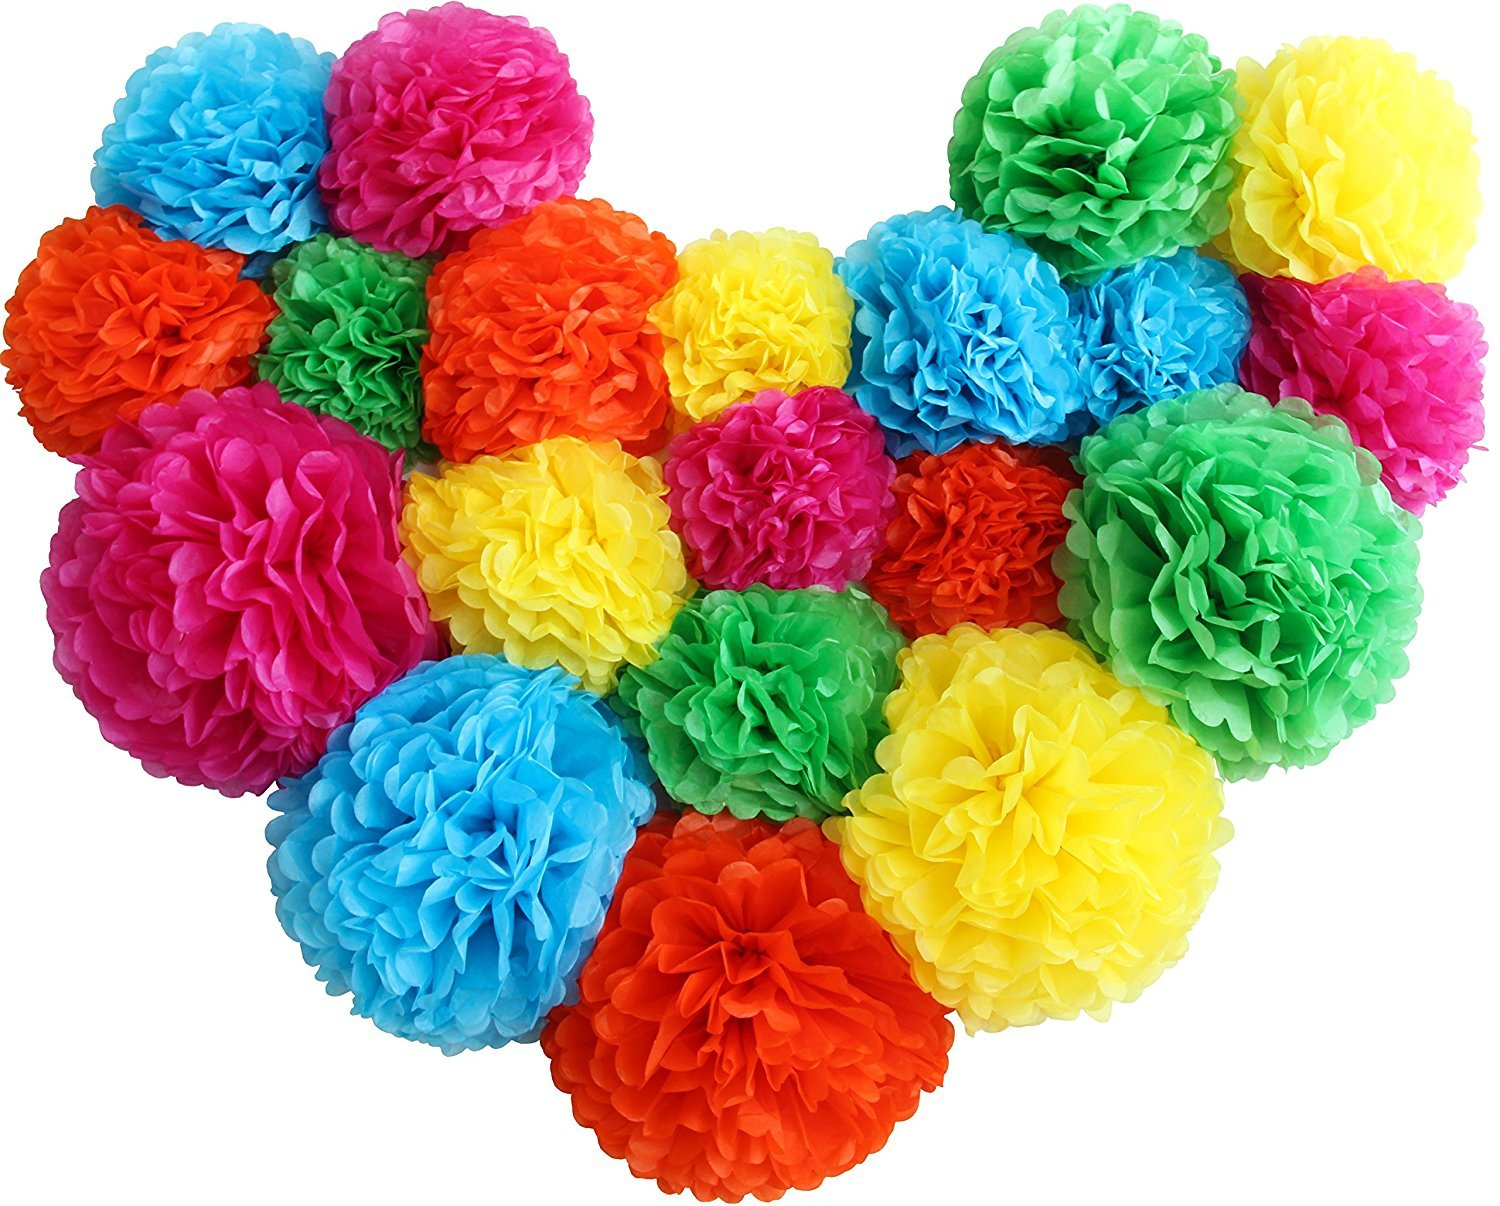 Monkey Home Paper Pom Poms Rainbow Decor- 20 pcs of 8, 10, 14 Inch - Paper Flowers - Perfect For Wedding Decor - Birthday Celebration - Table and Wall Decoration (Multi Colored)